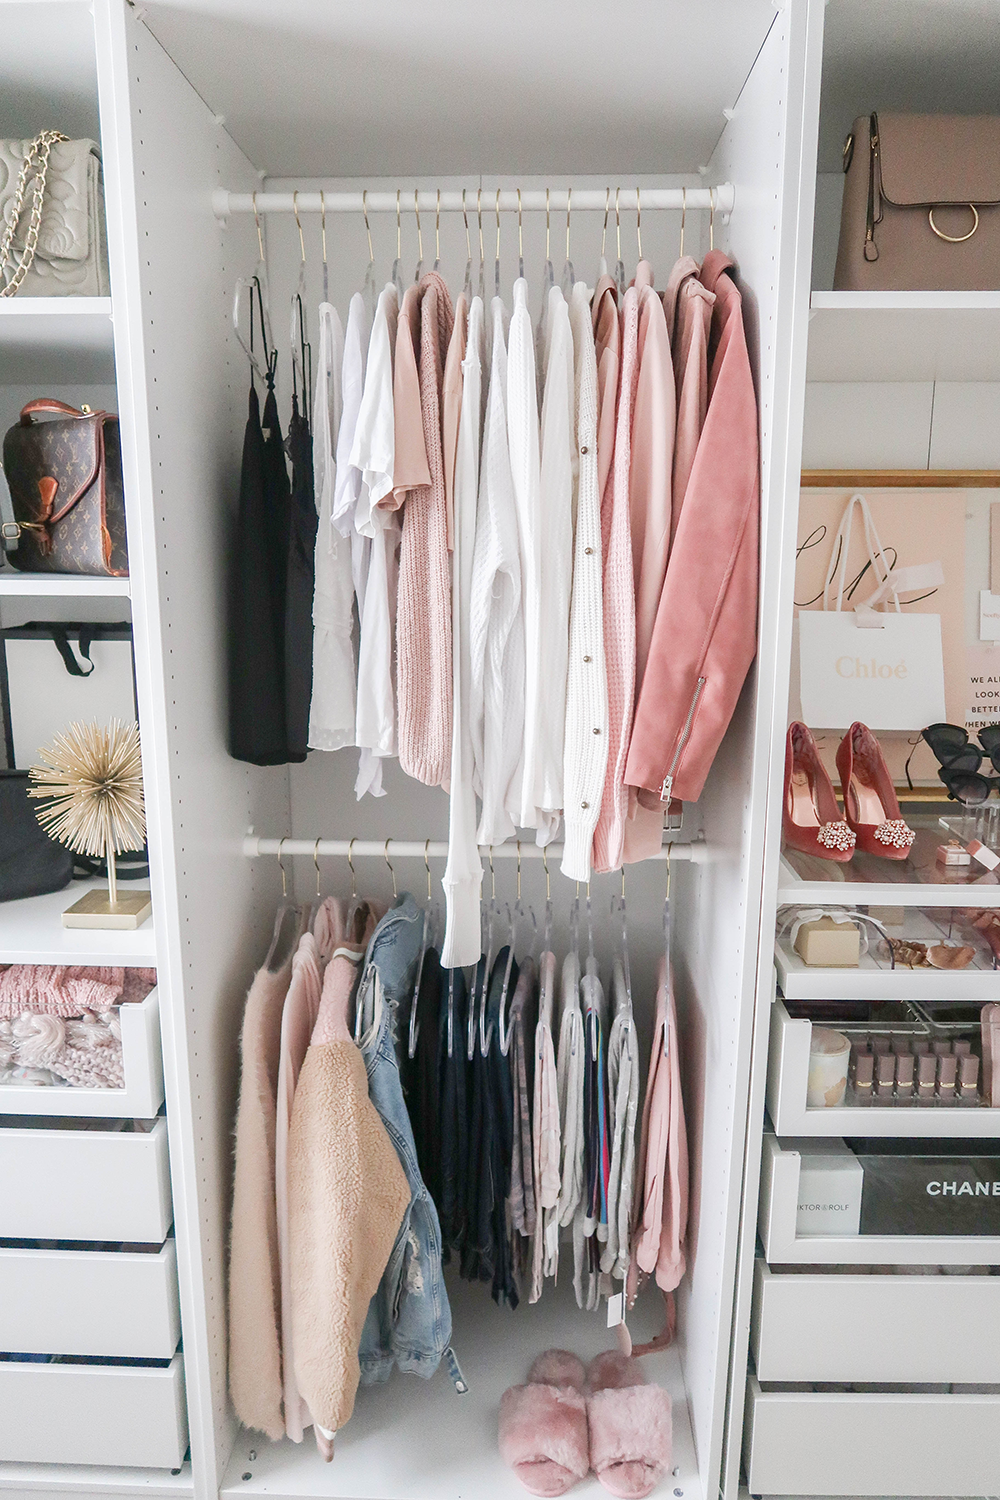 Cloffice Makeover Reveal With Images Apartment Closet